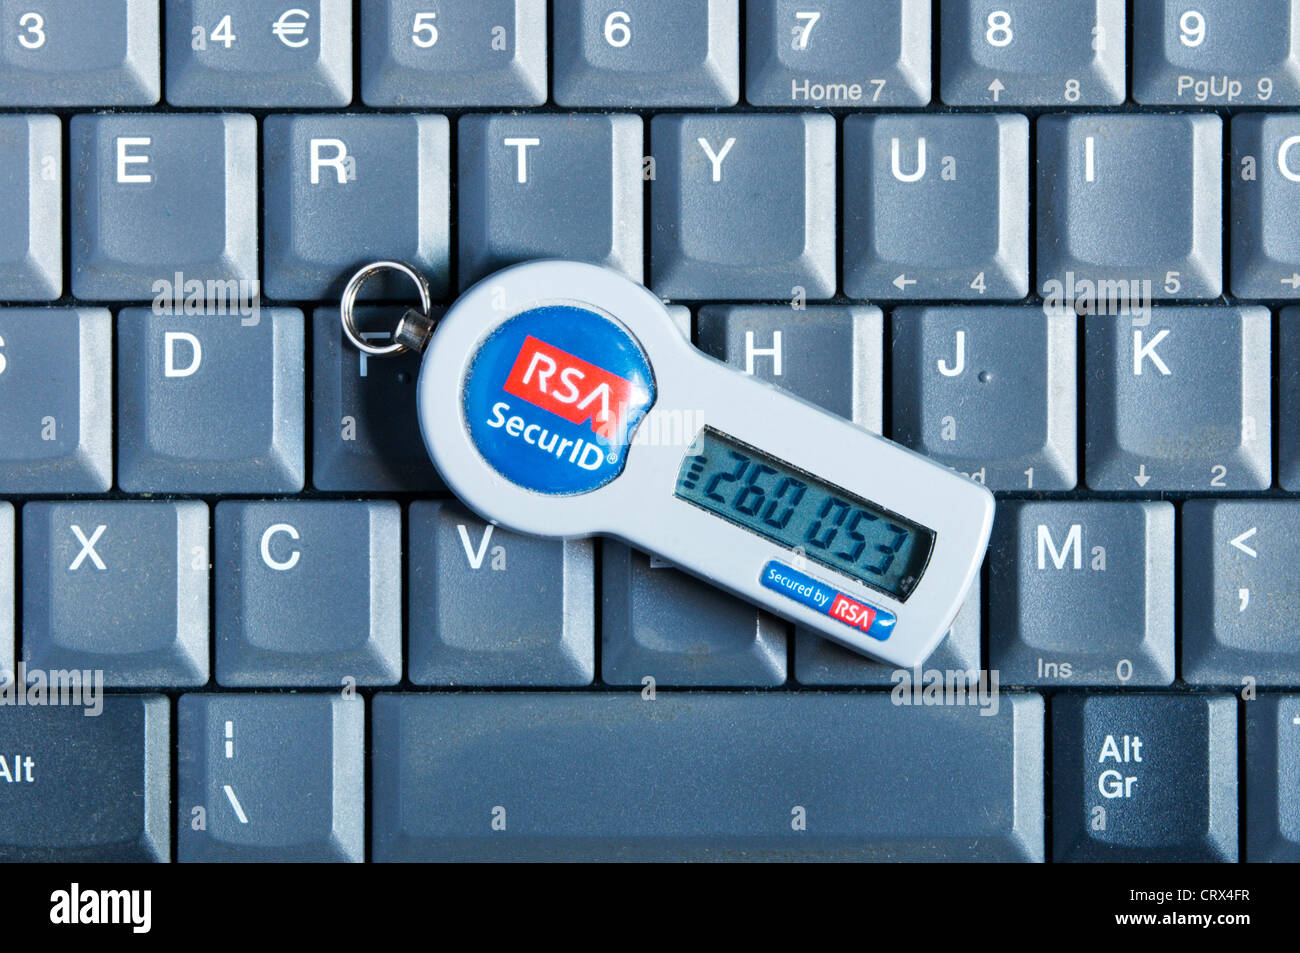 An RSA SecurID security token resting on the keyboard of a laptop computer. - Stock Image